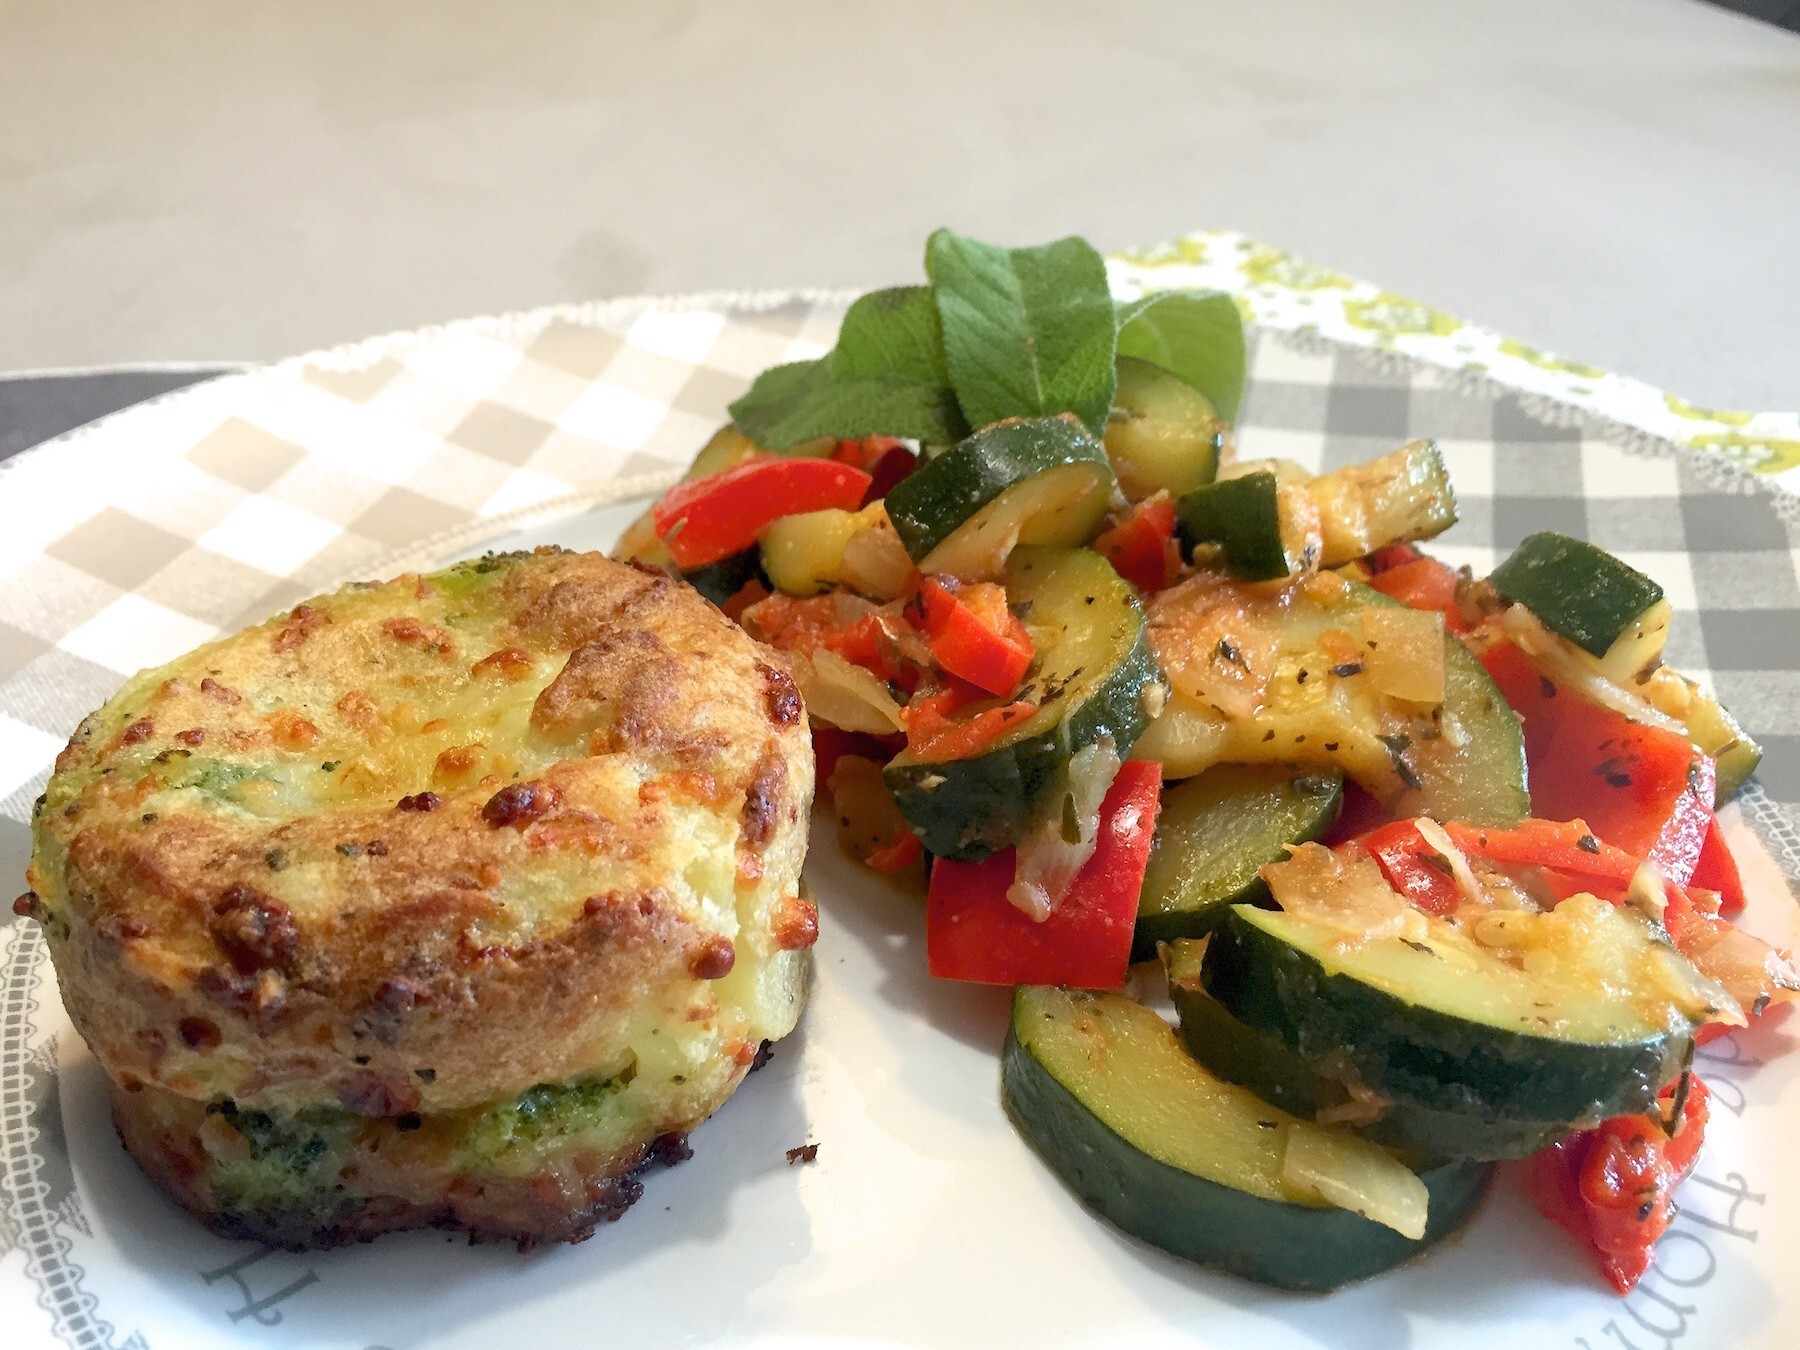 Courgette ratatouille met mini broccoli gratin